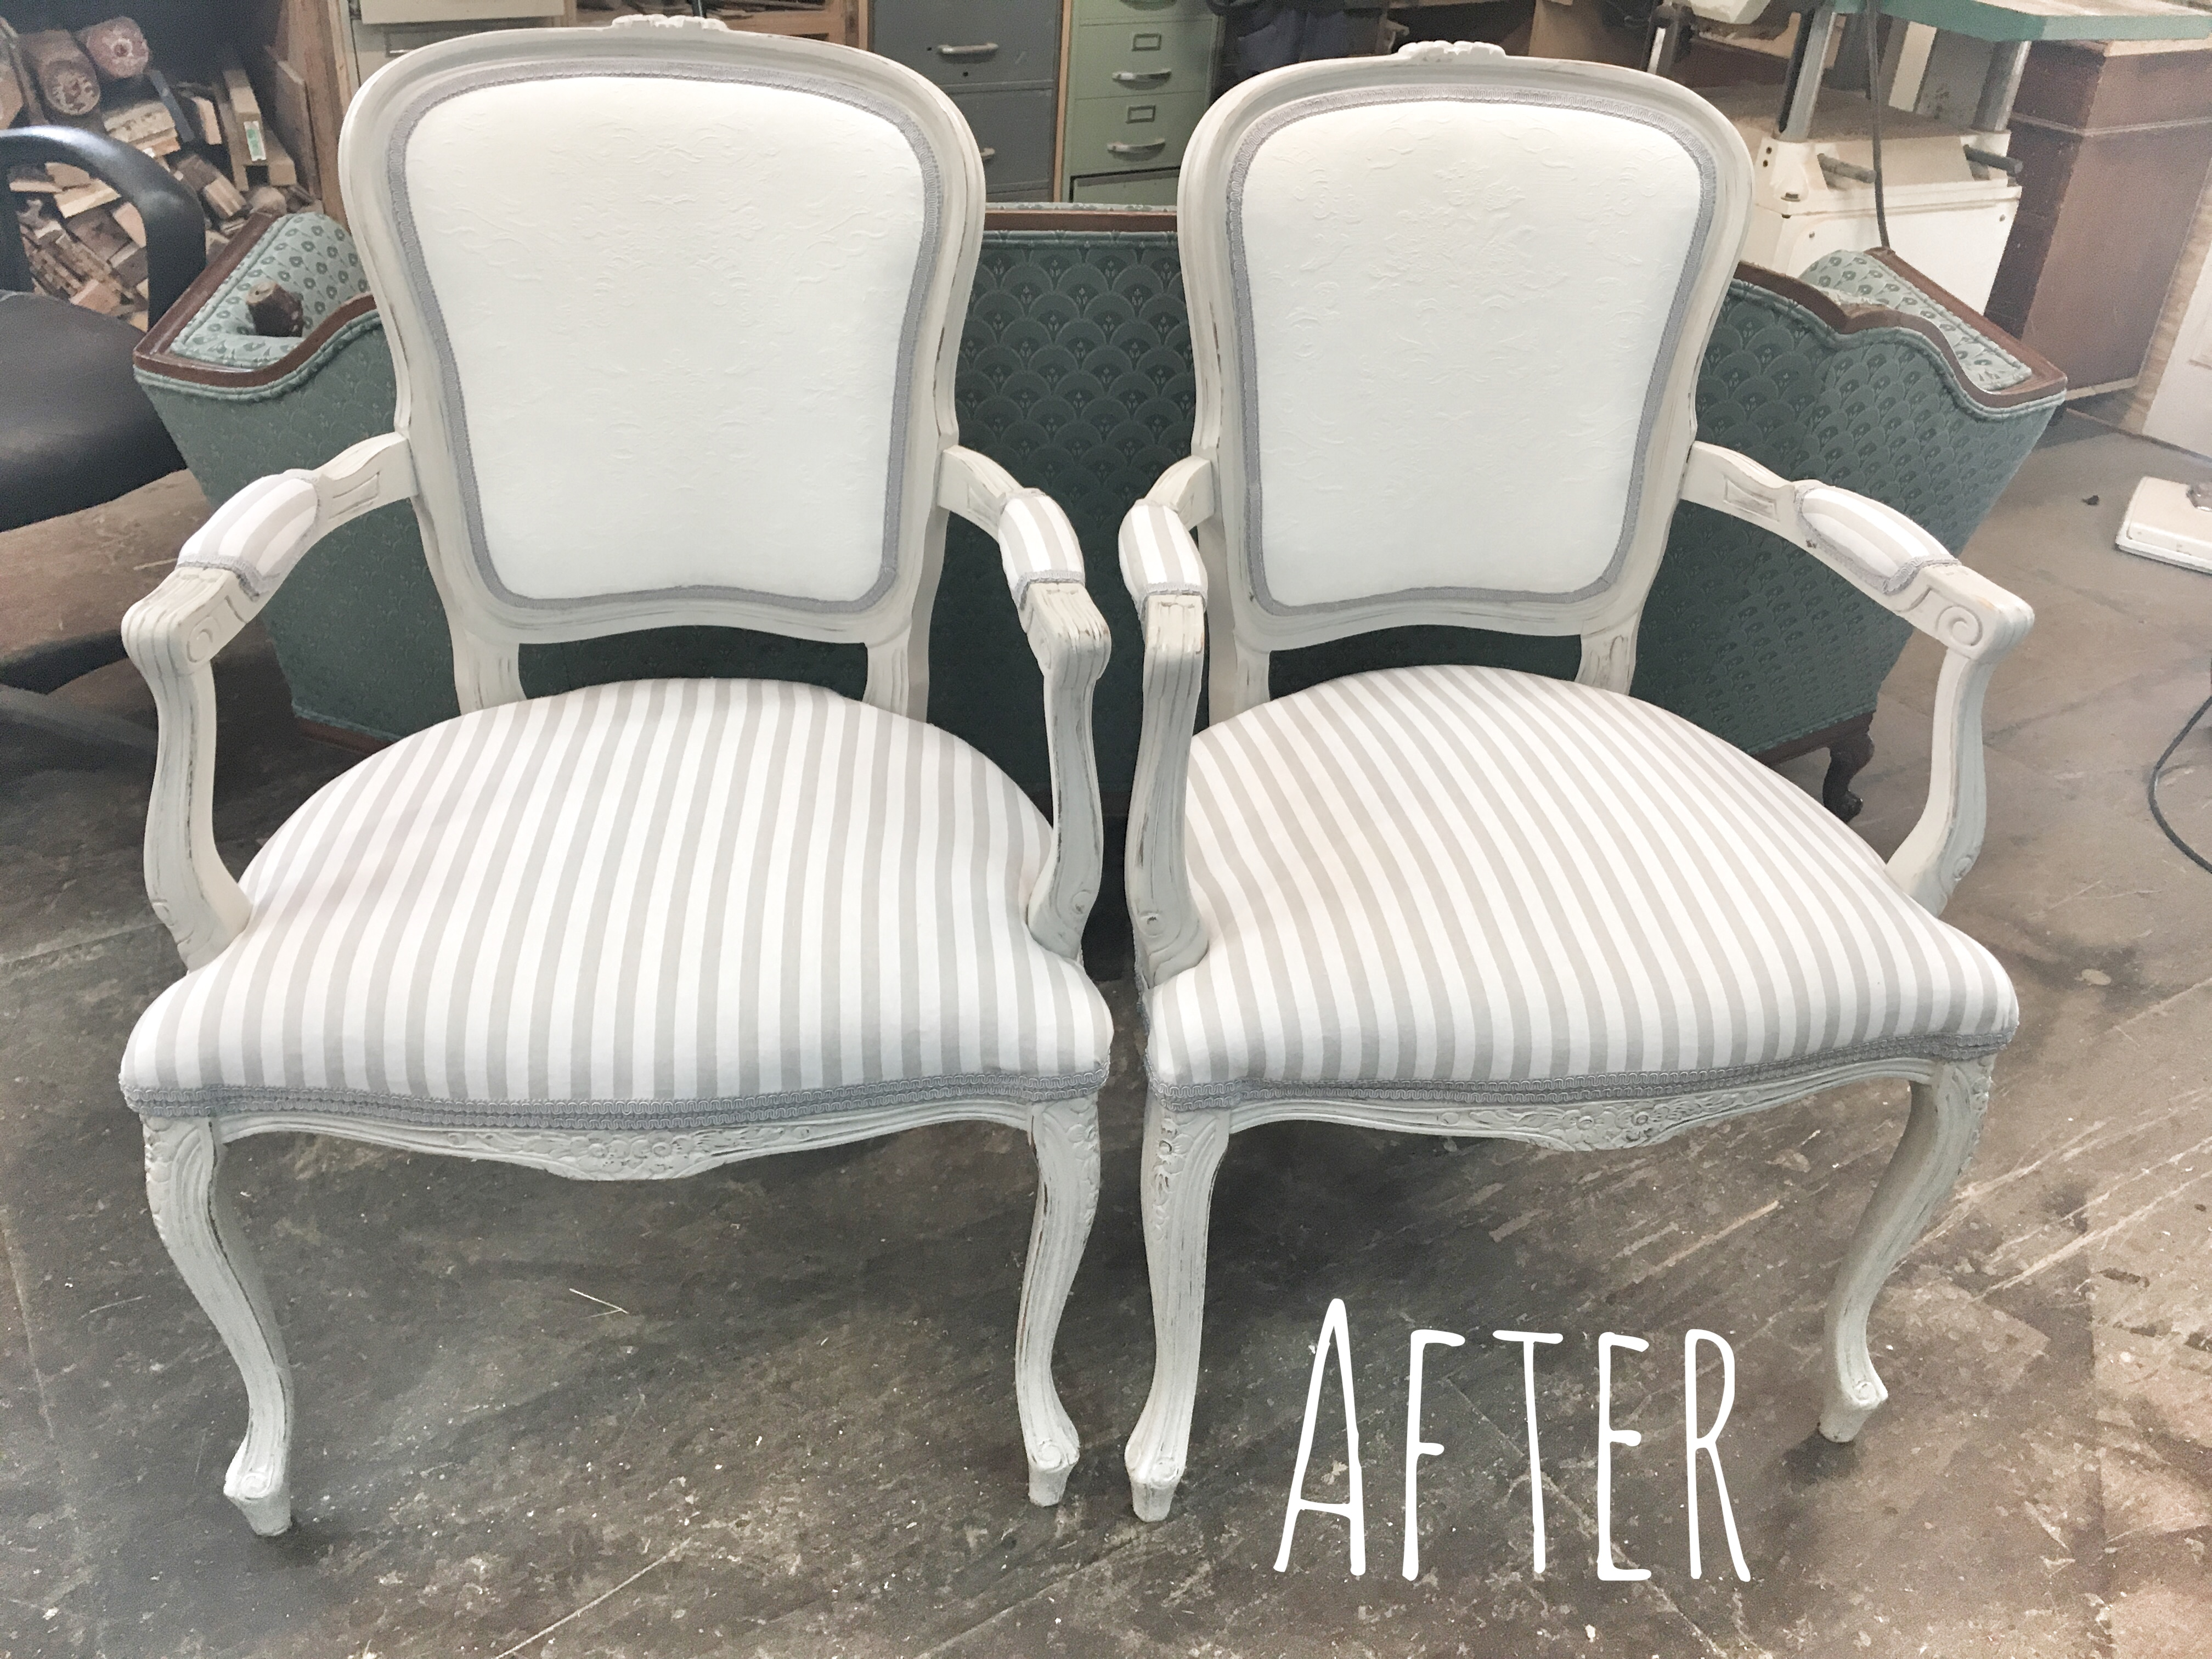 shabby chic, farmhouse chairs, update after